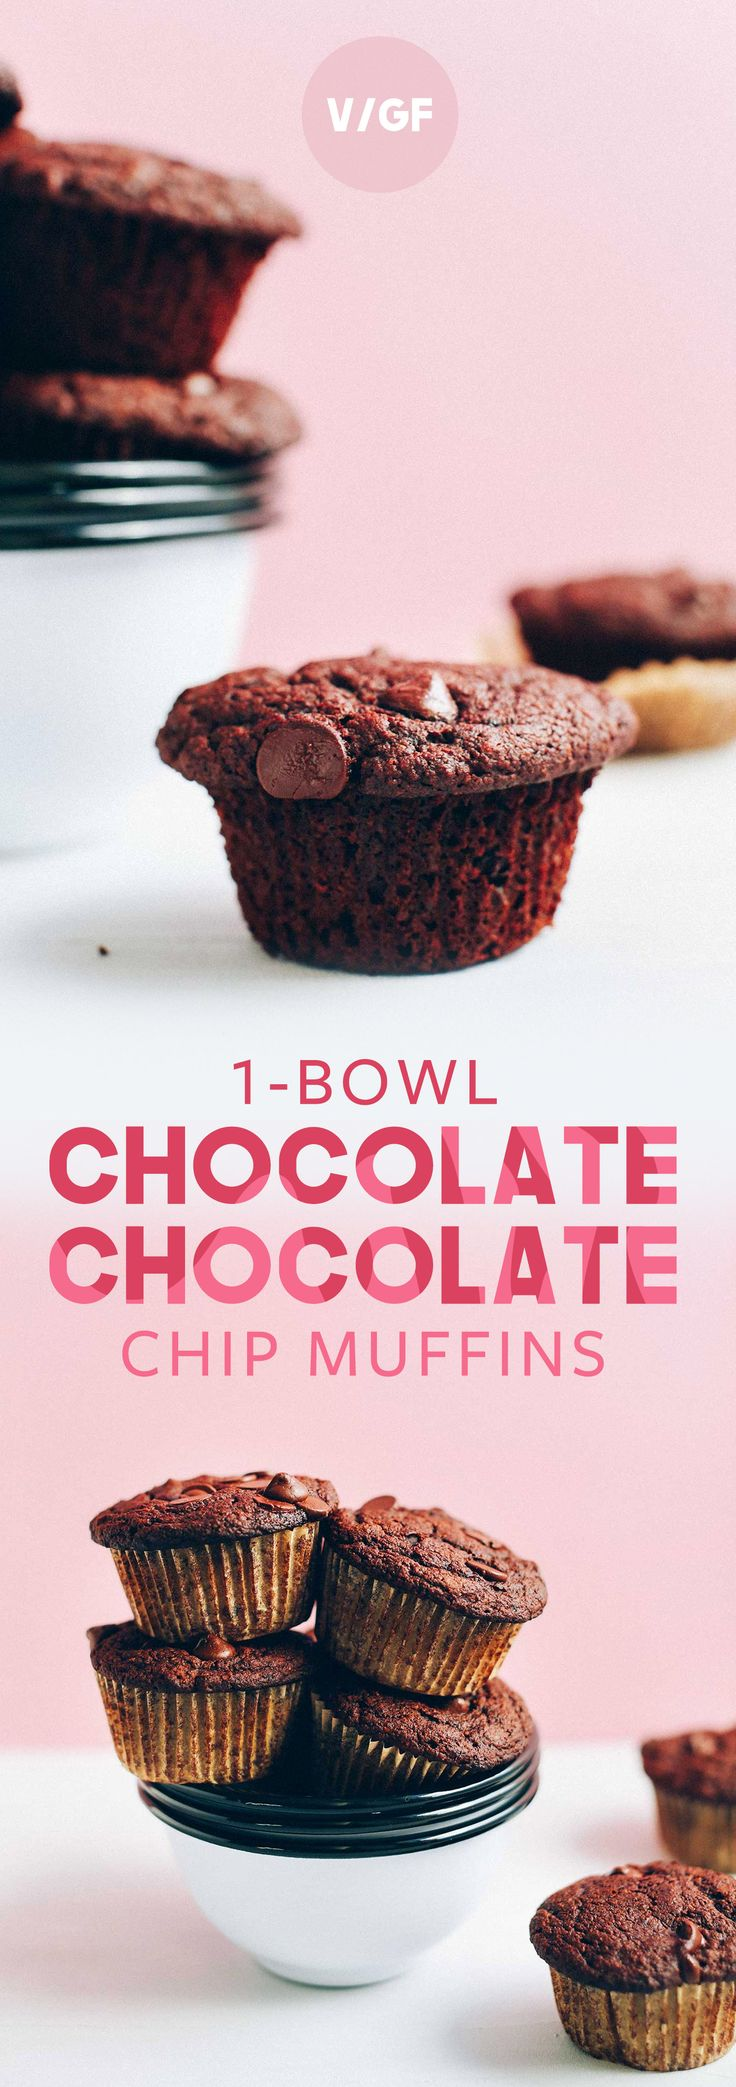 Tender, fluffy, vegan chocolate chocolate chip muffins made with in 1 bowl! Naturally sweet, insanely delicious, and so easy to make.